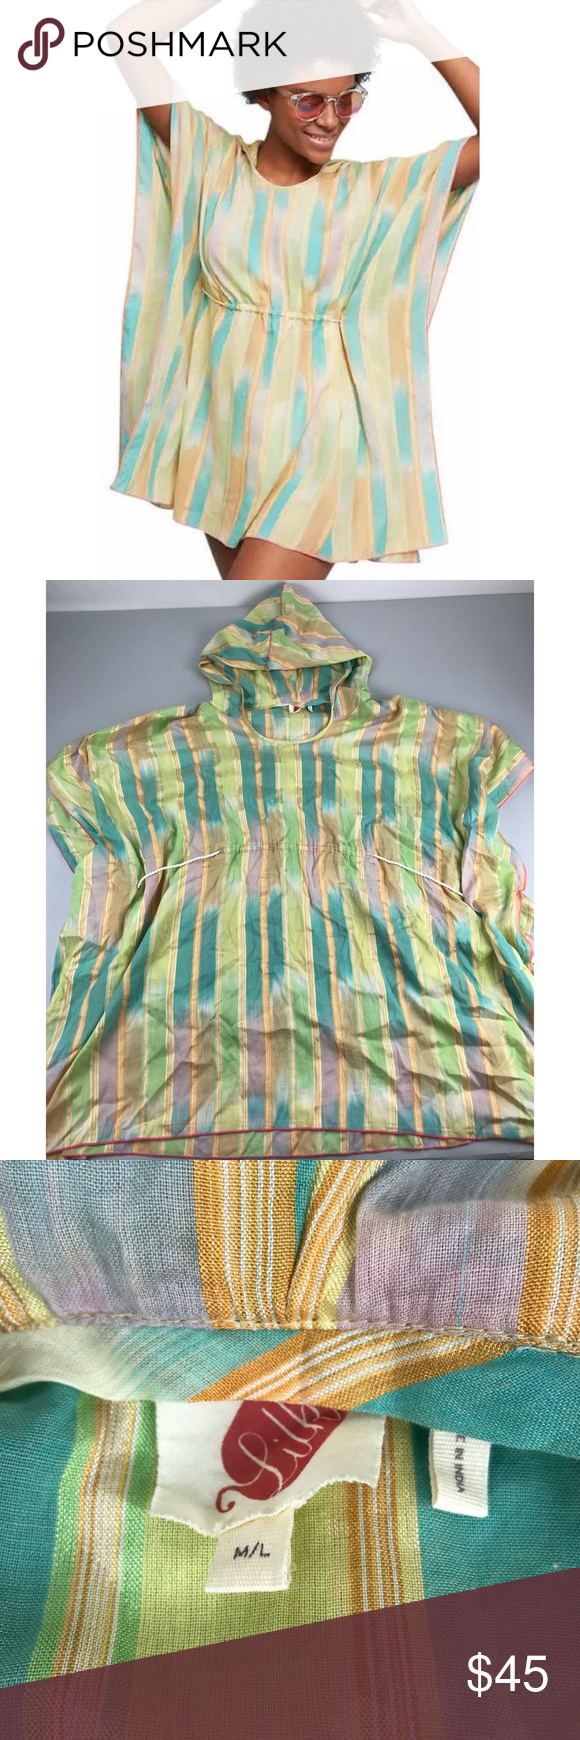 5ad600fc94f1 Anthropologie Lilka Pastel Yarn Dyed Striped Dress Anthropologie Lilka  Pastel Yarn Dyed Striped Hooded Beach Poncho Dress M L Tunic Great  condition.